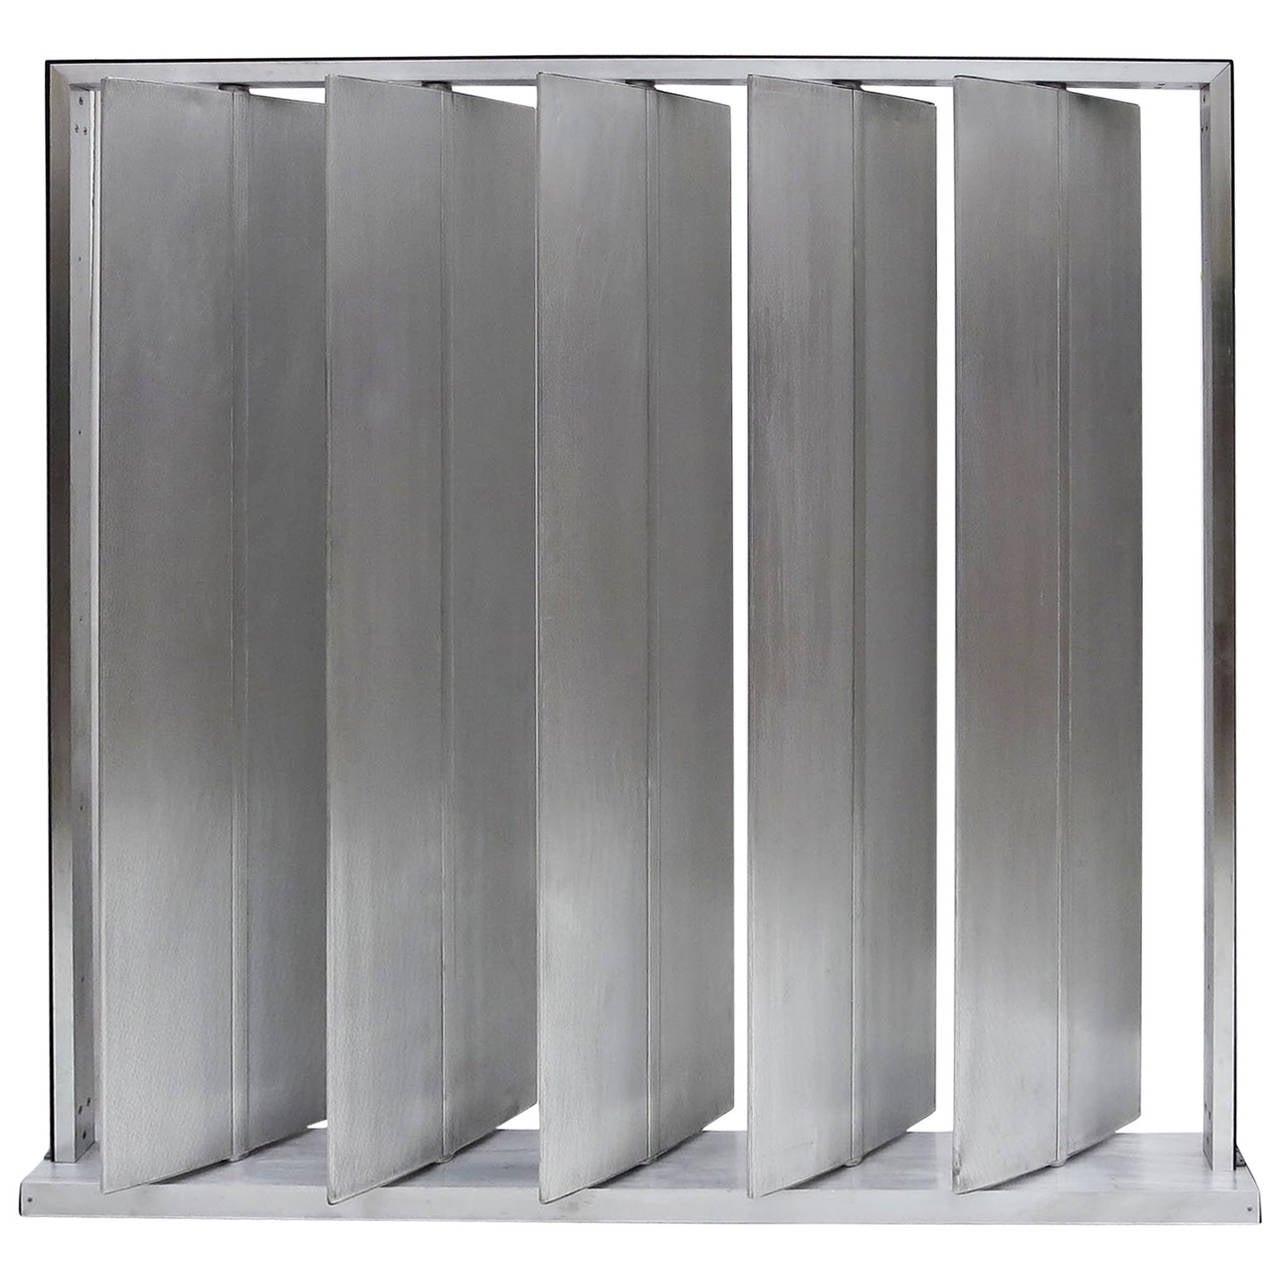 Louvered Metal Room Divider In The Manner Of Jean Prouv 1